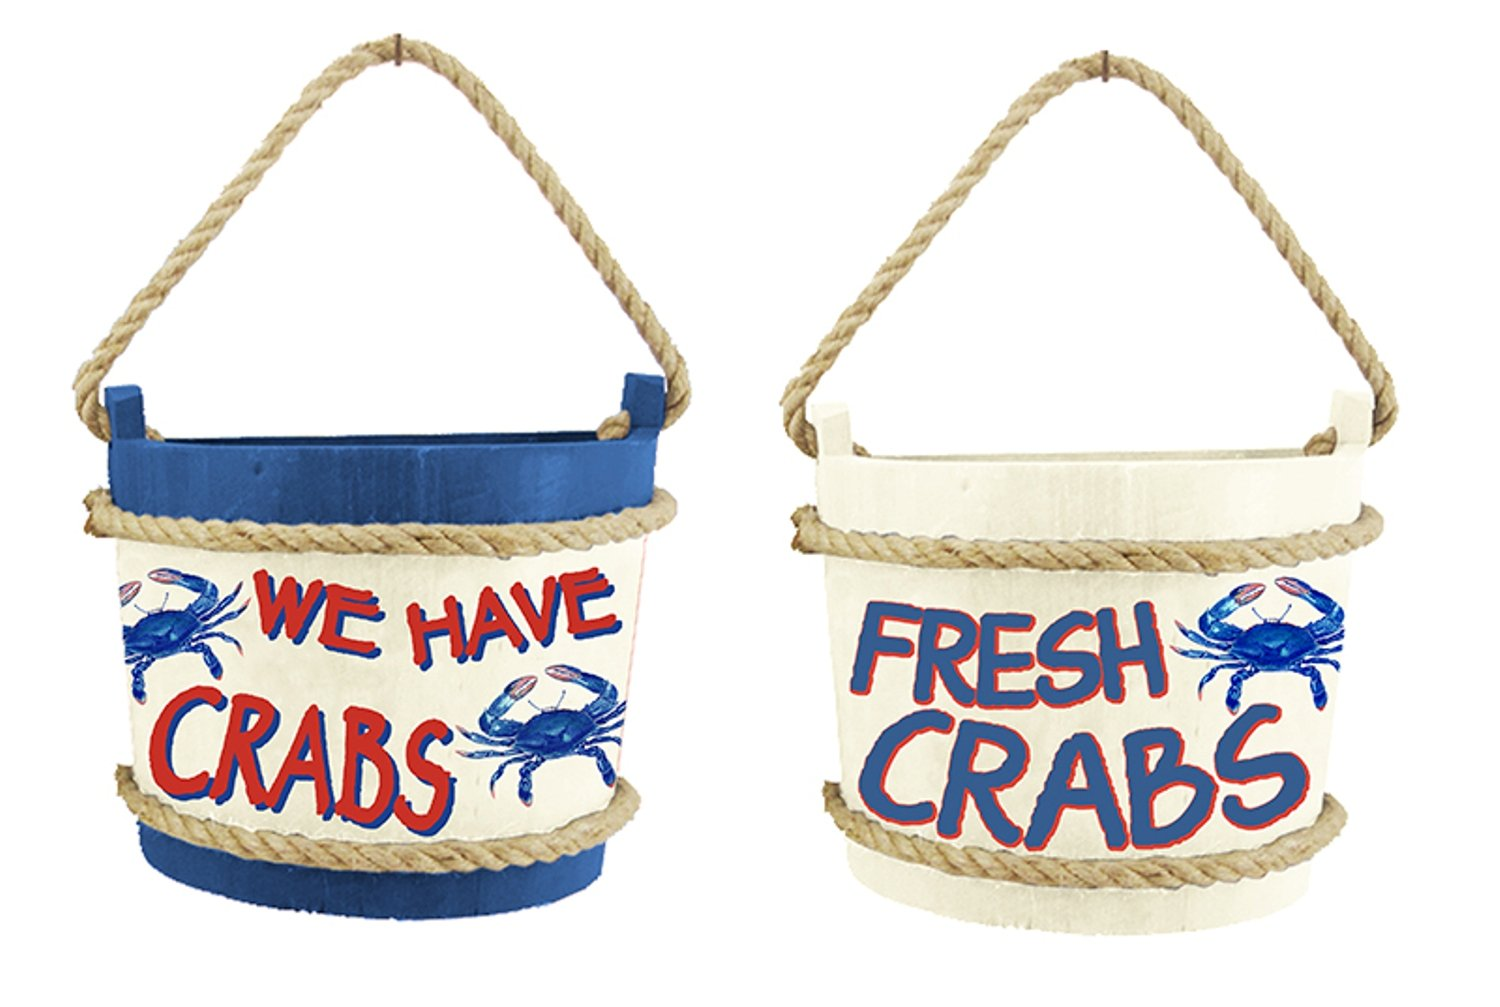 Chesapeake Bay We Have Crabs and Fresh Crabs Wood Buckets 8 Inches Set of 2